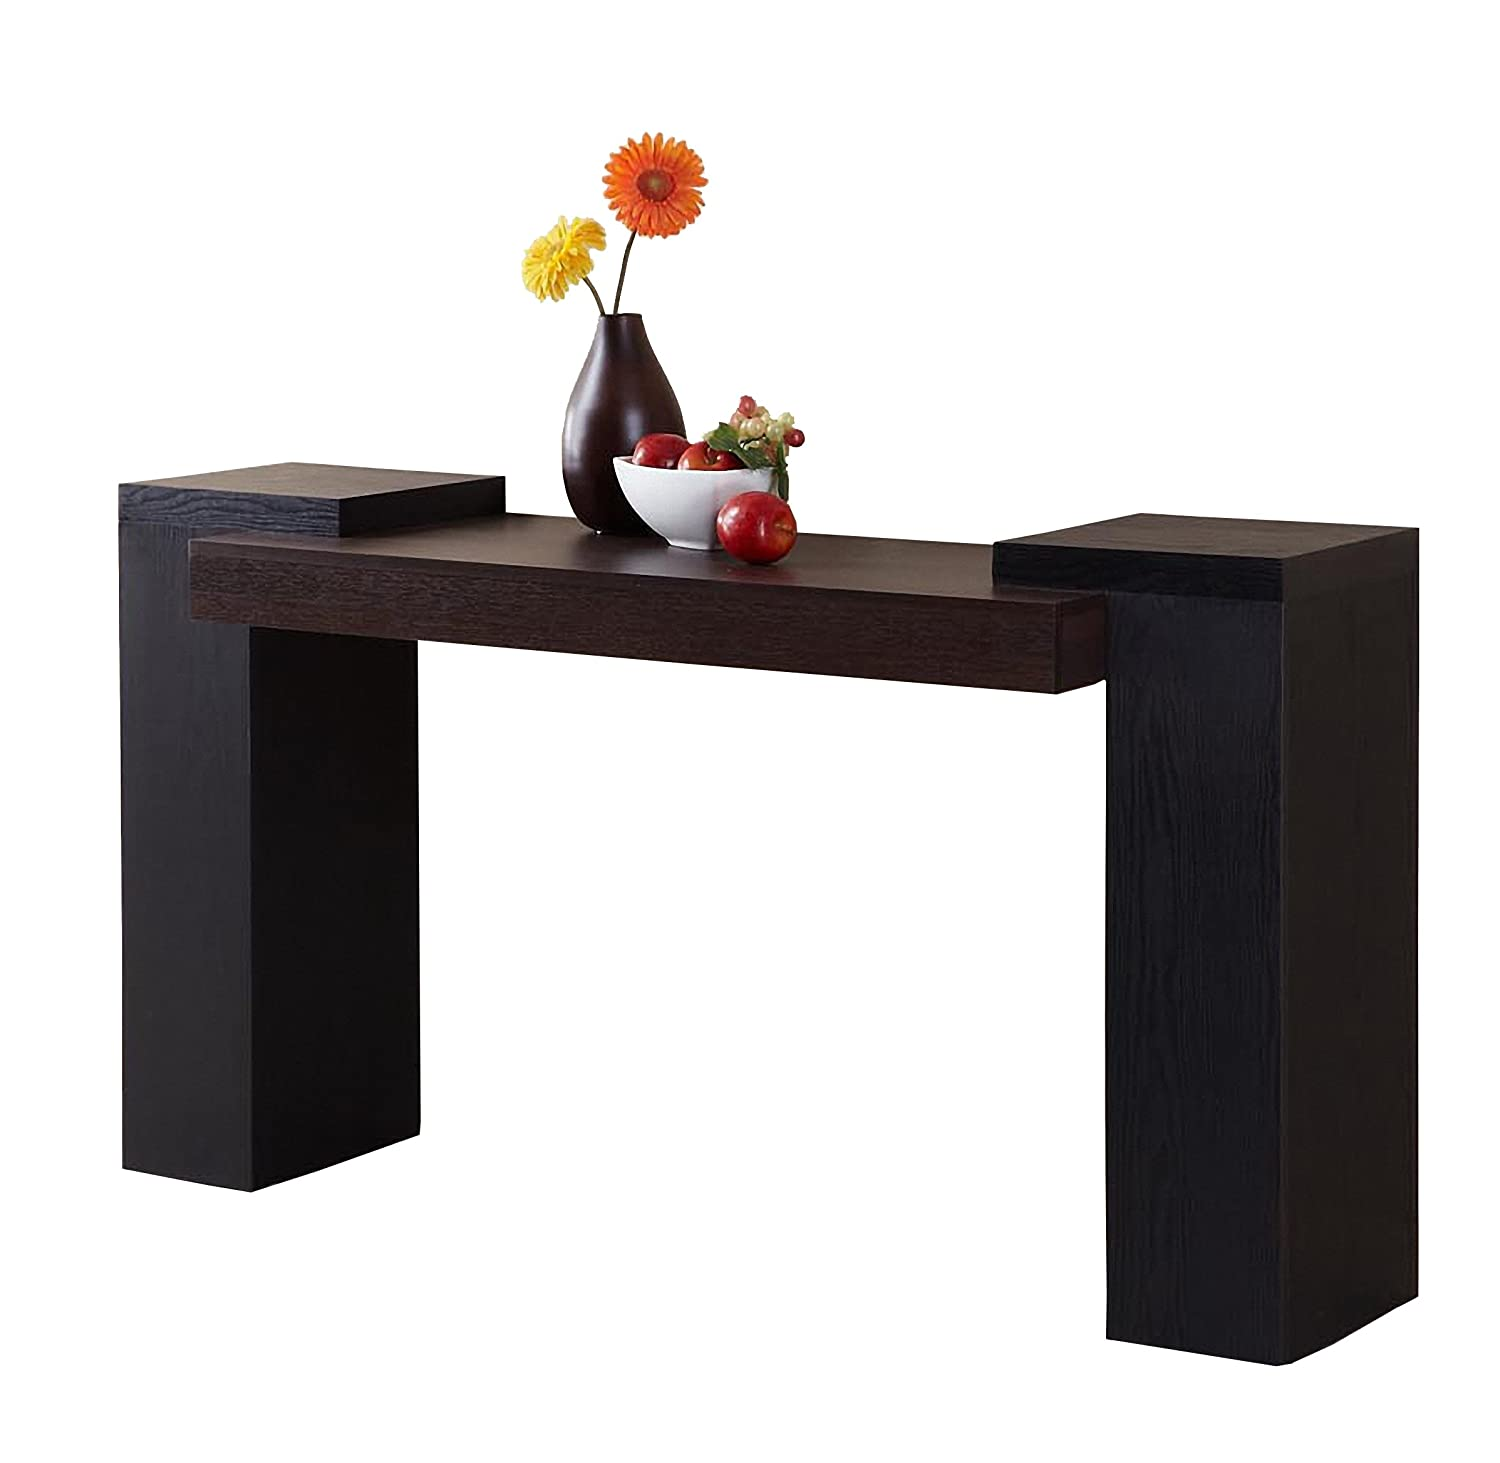 Furniture of America Enitial Lab Century Console Table, Dark Walnut and Black YNJ-ST2024-A1